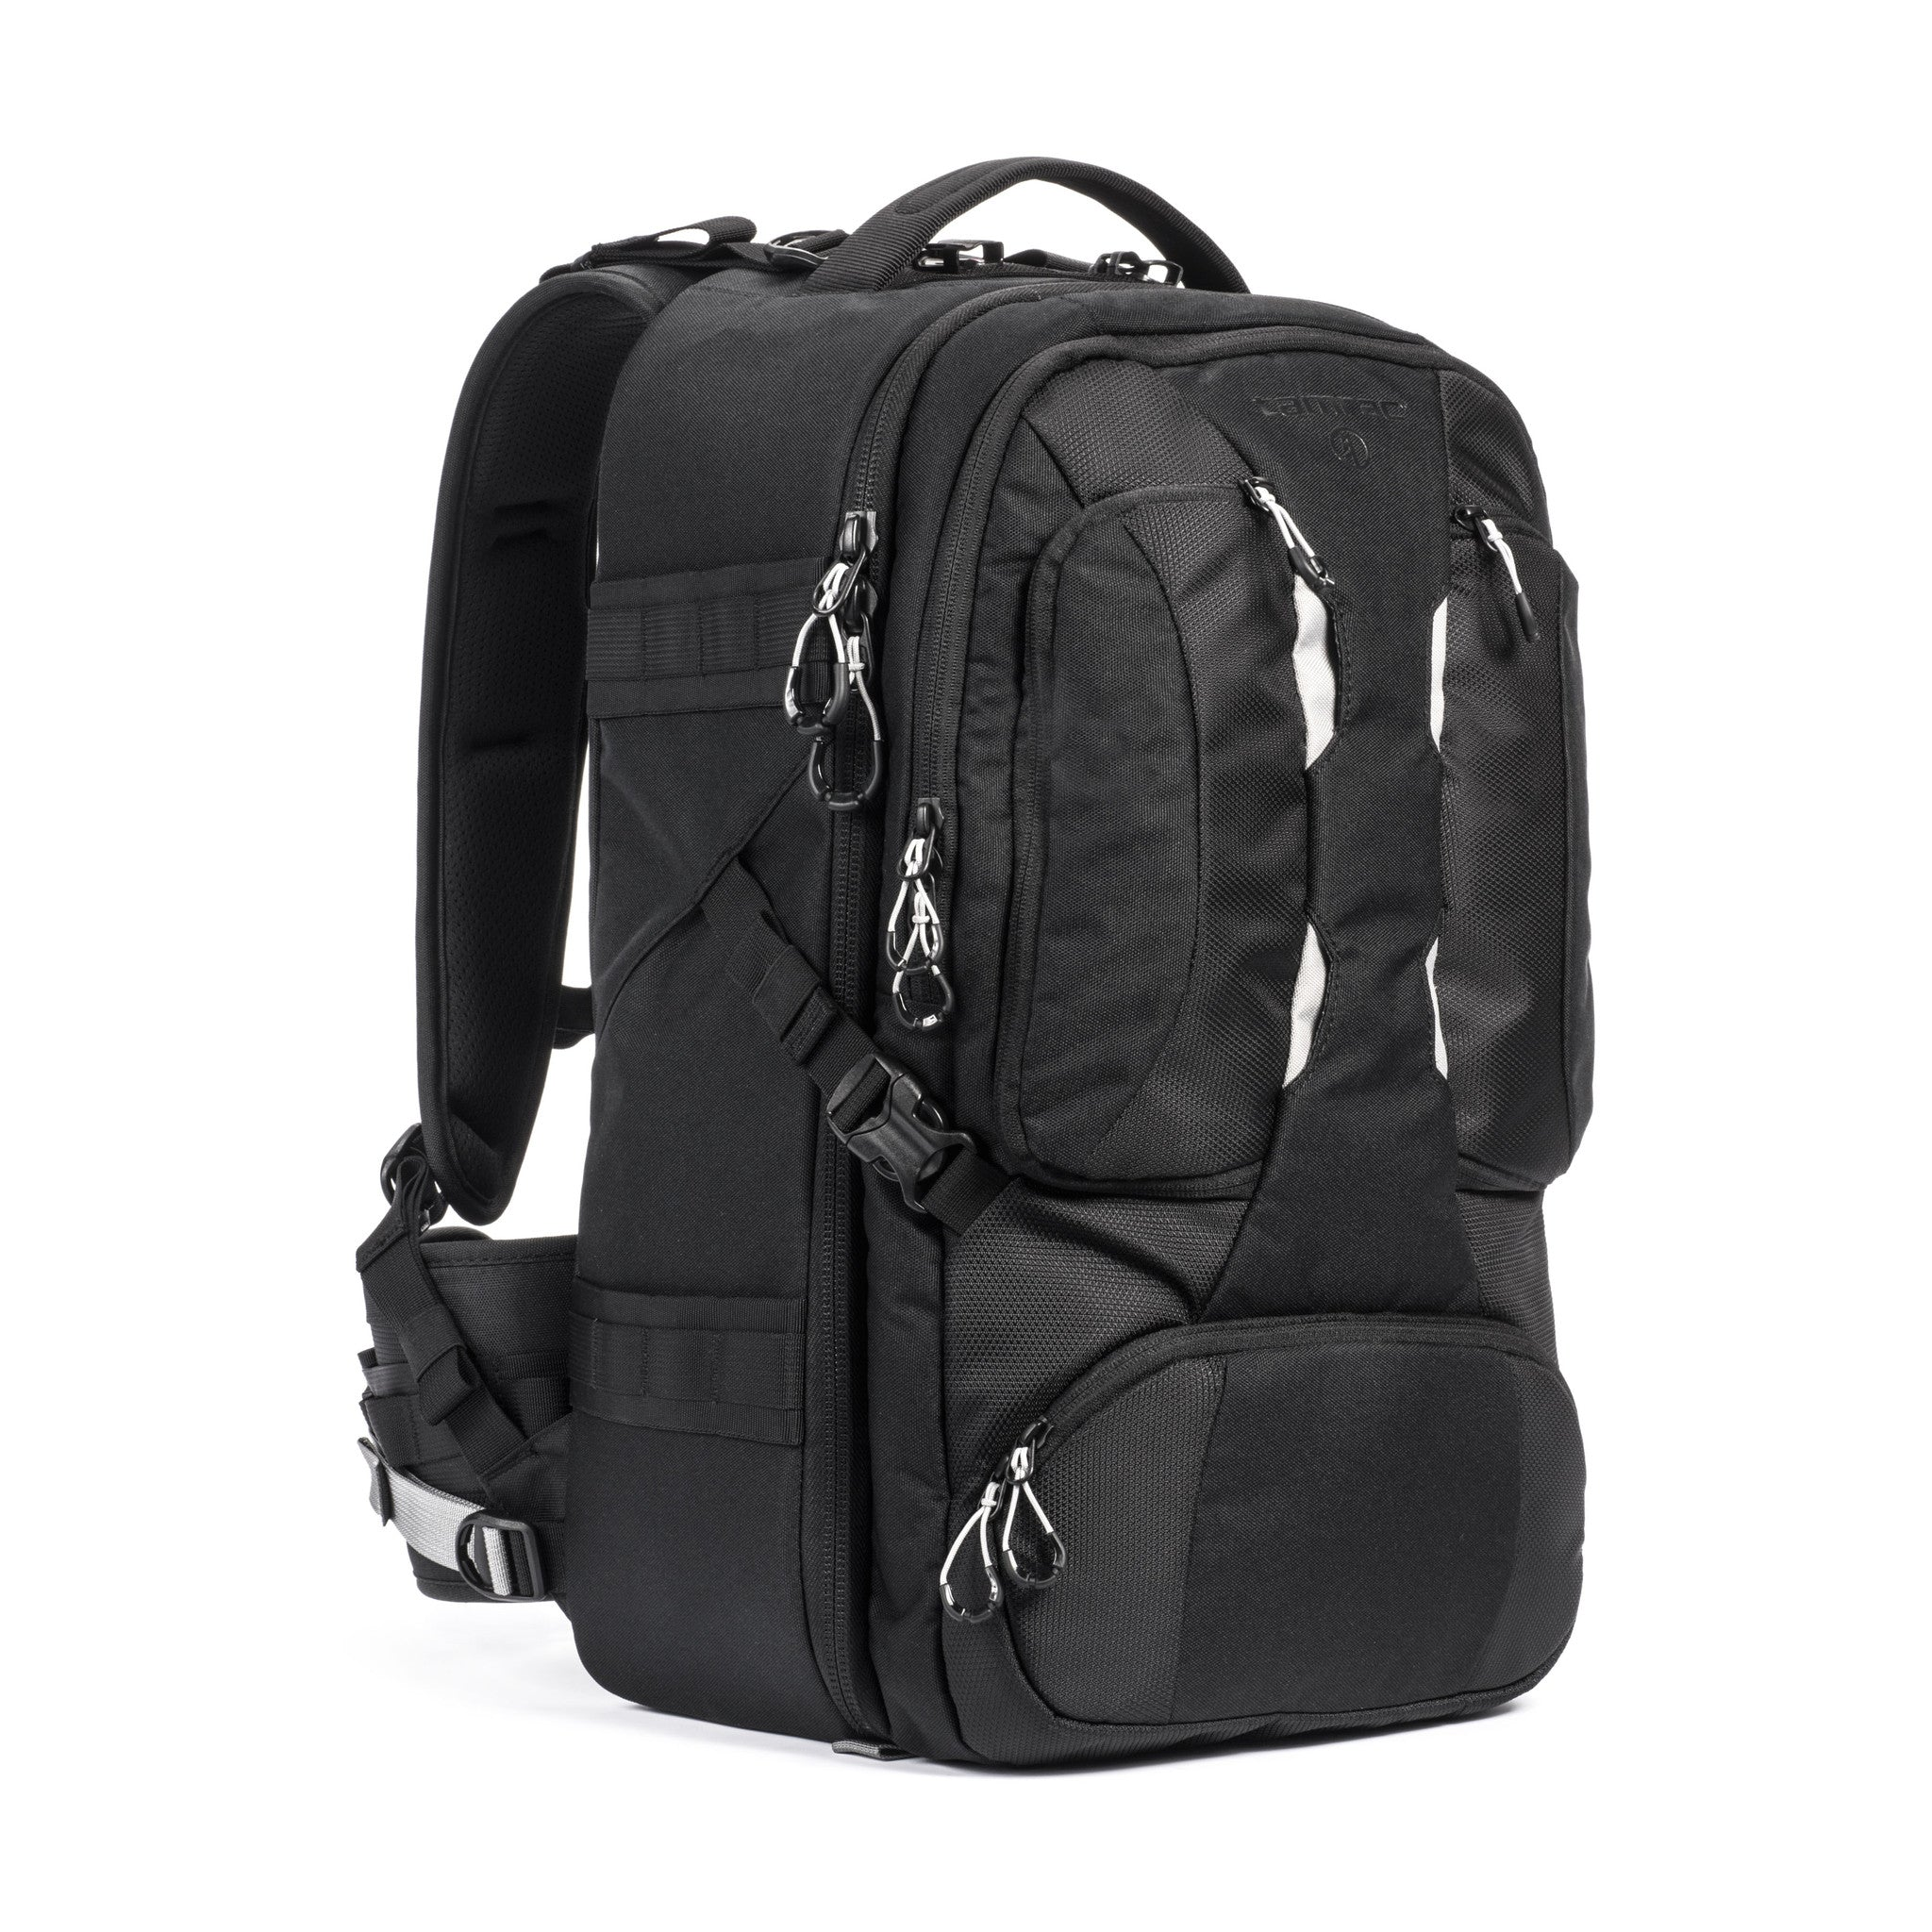 3b57a6fa80 Tamrac Anvil 27 Pro Camera Backpack - Free Shipping